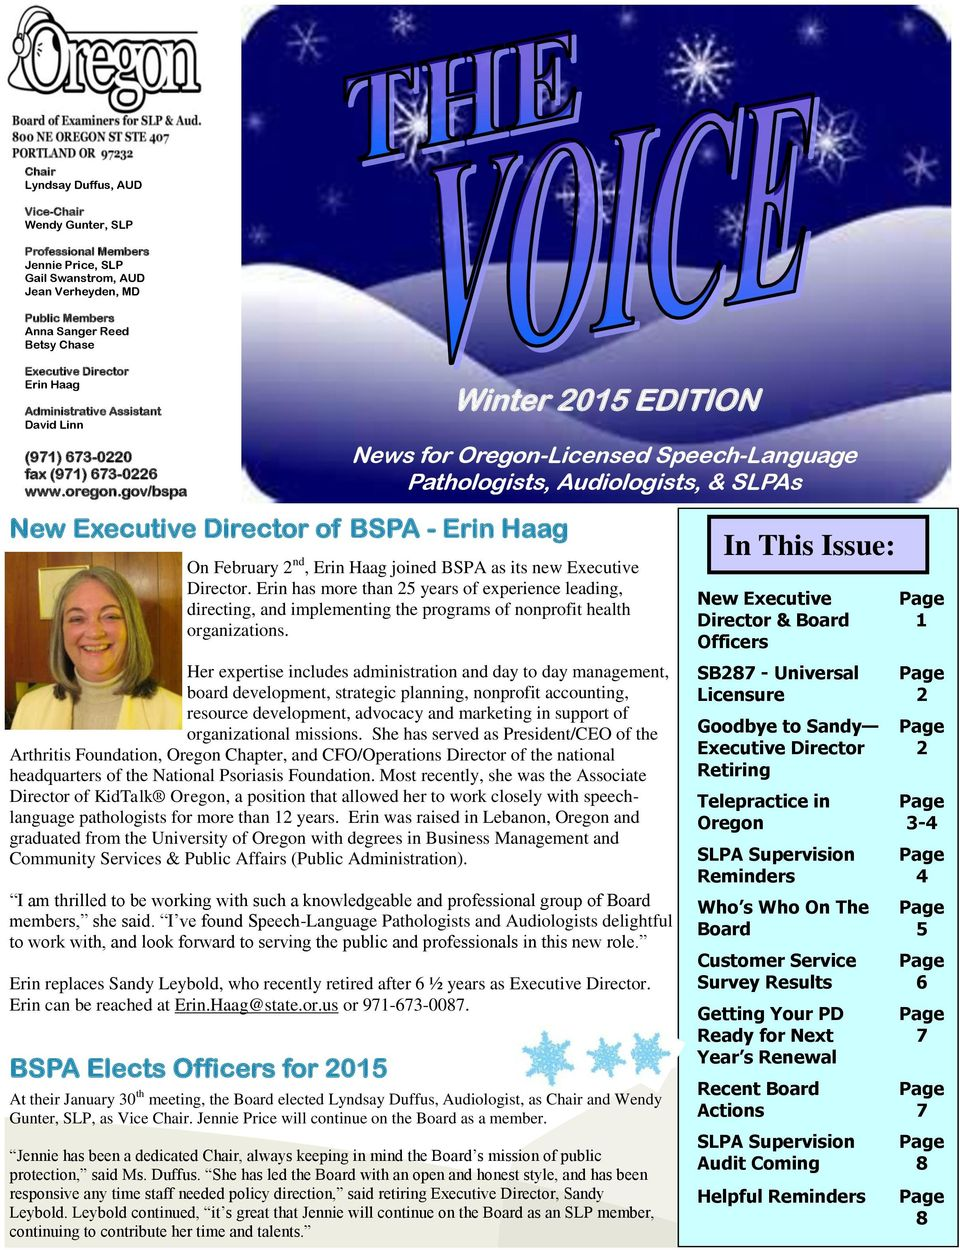 gov/bspa New Executive Director of BSPA - Erin Haag Winter 2015 EDITION News for Oregon-Licensed Speech-Language Pathologists, Audiologists, & SLPAs On February 2 nd, Erin Haag joined BSPA as its new